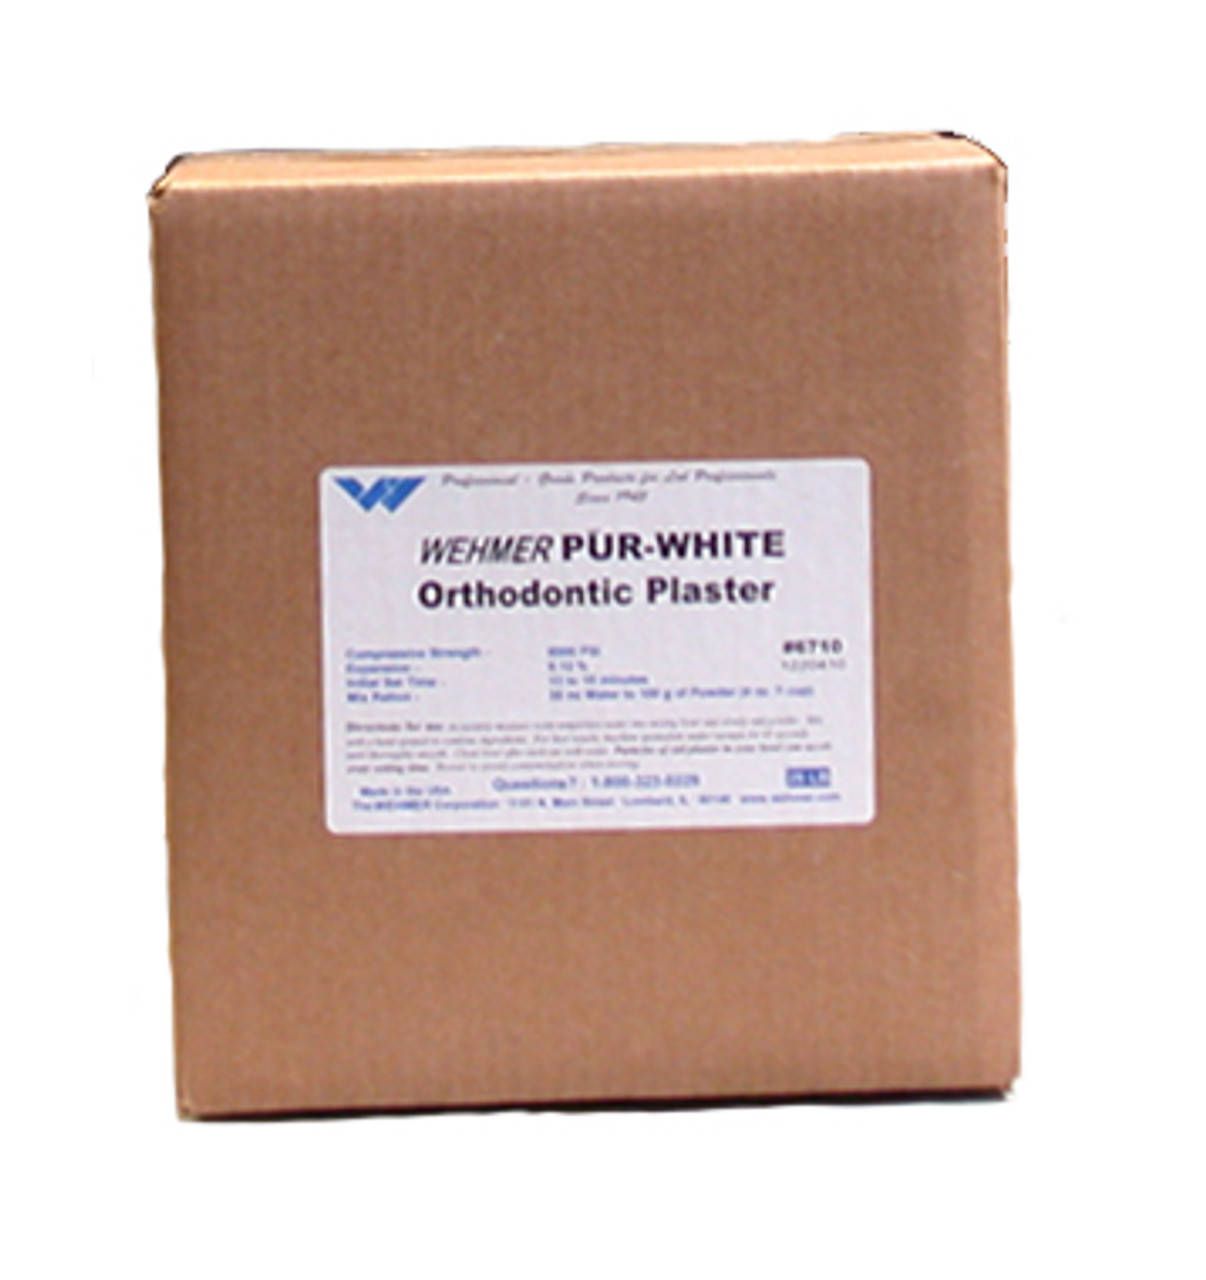 Pur-White Orthodontic Plaster - 25 lbs